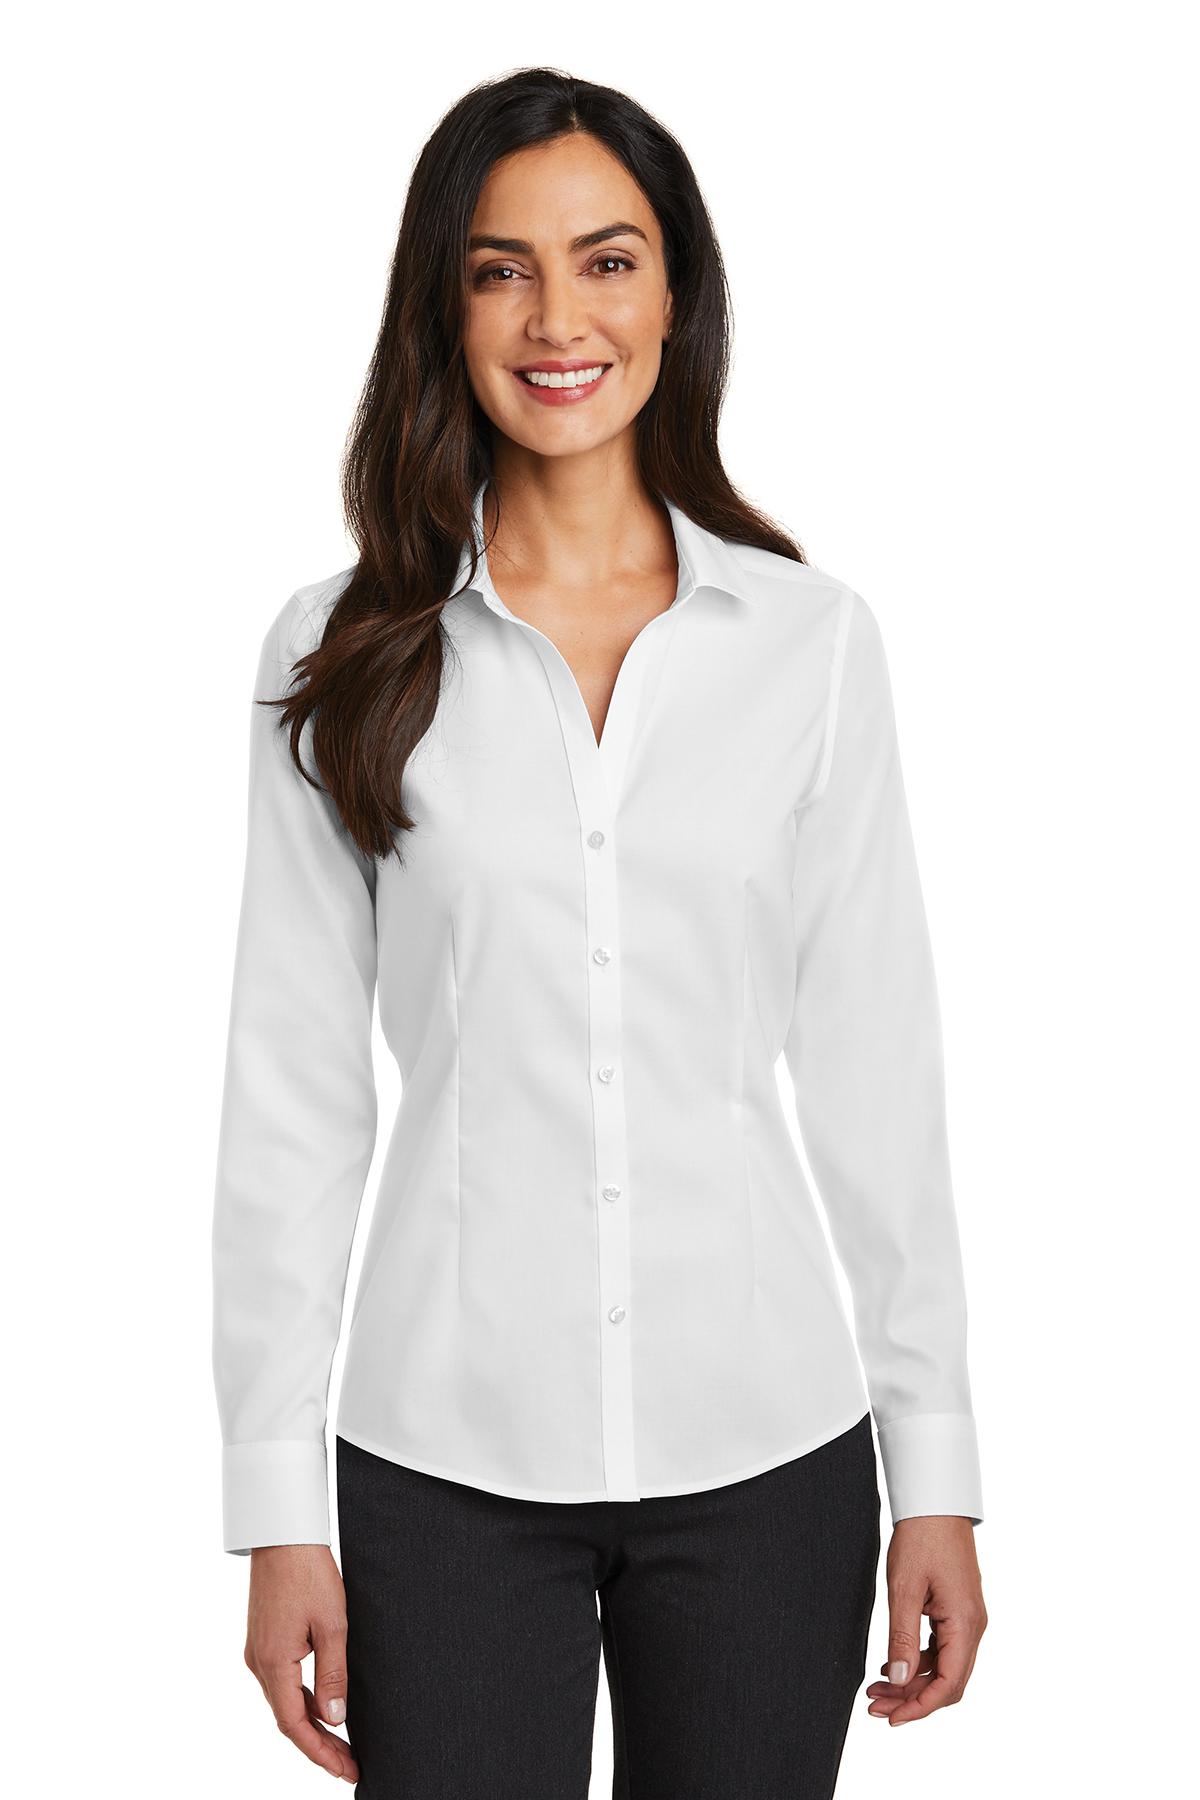 Red House RH250 - Ladiess Pinpoint Oxford Non-Iron Shirt